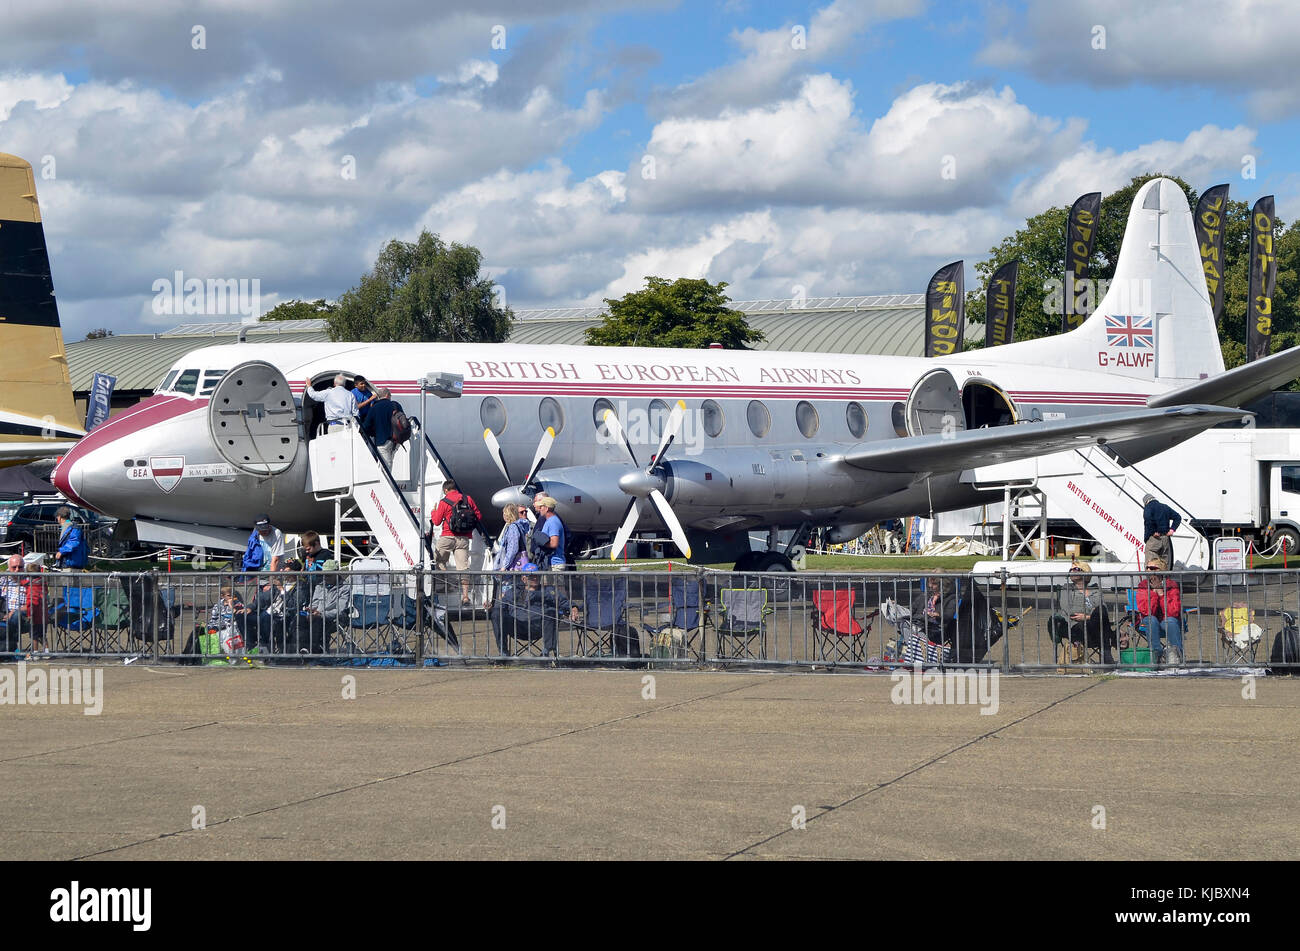 Vickers Viscount, British European Airways, Duxford, England. Vickers Viscount V701 wurde von BEA von 1953 geflogen, Stockbild